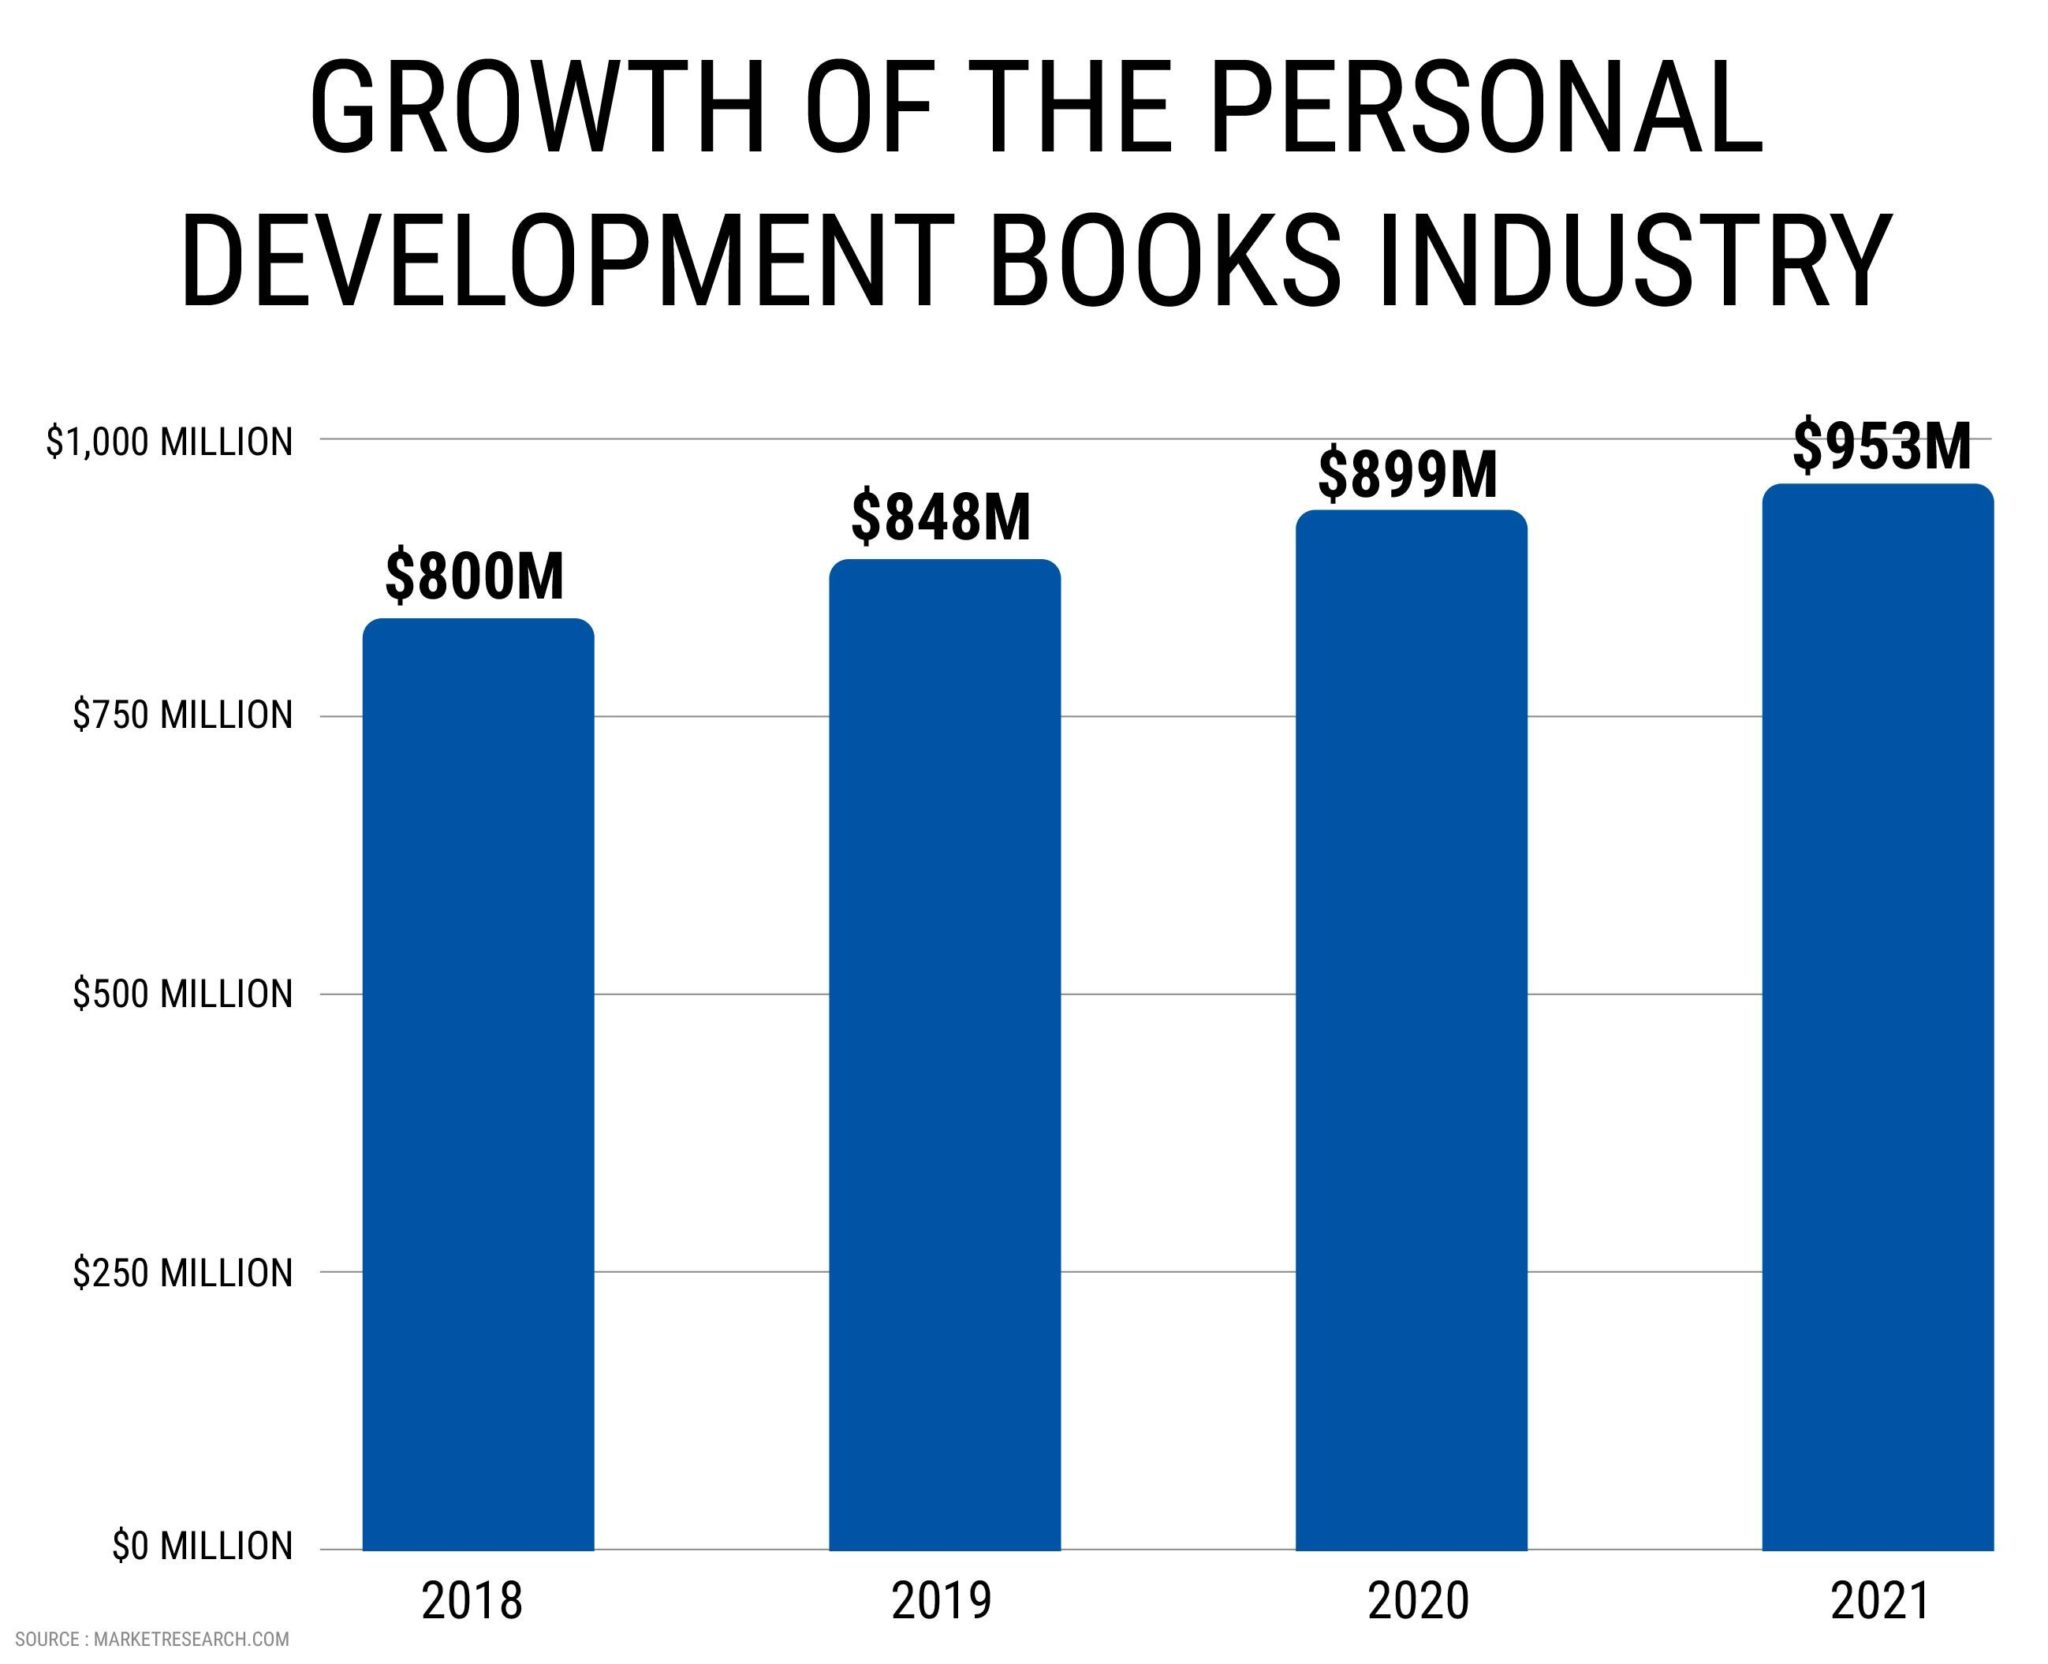 GROWTH OF THE PERSONAL DEVELOPMENT BOOKS INDUSTRY